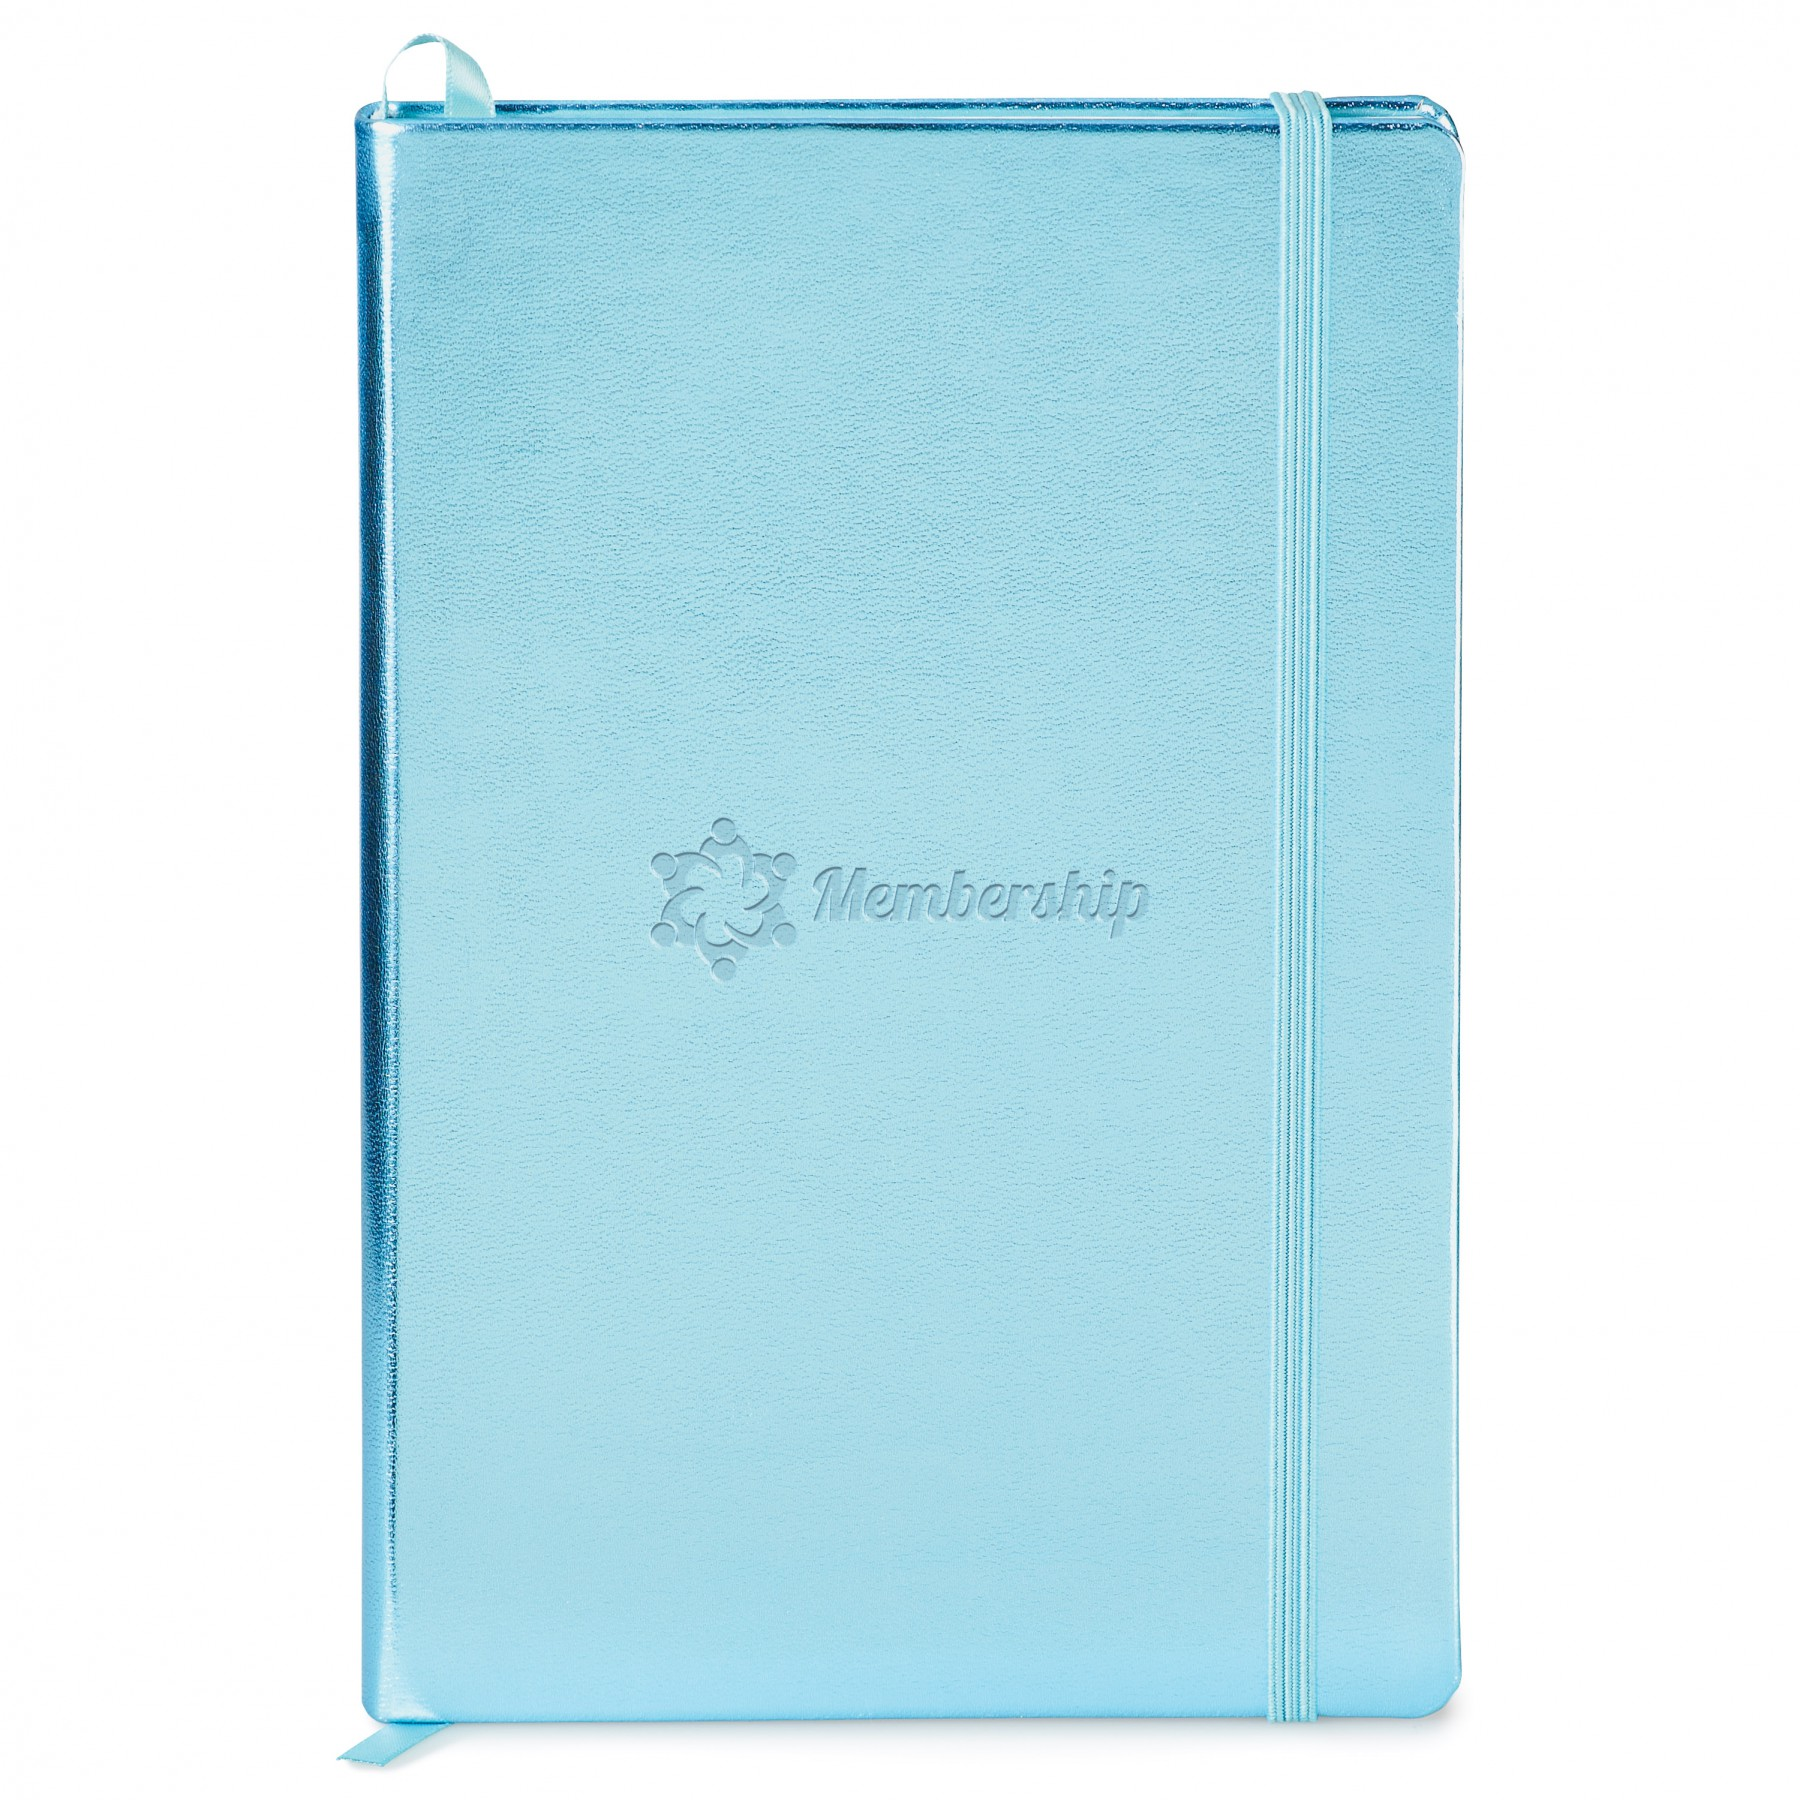 Metallic Neoskin Hard Cover Journal, ST4175, Debossed Logo